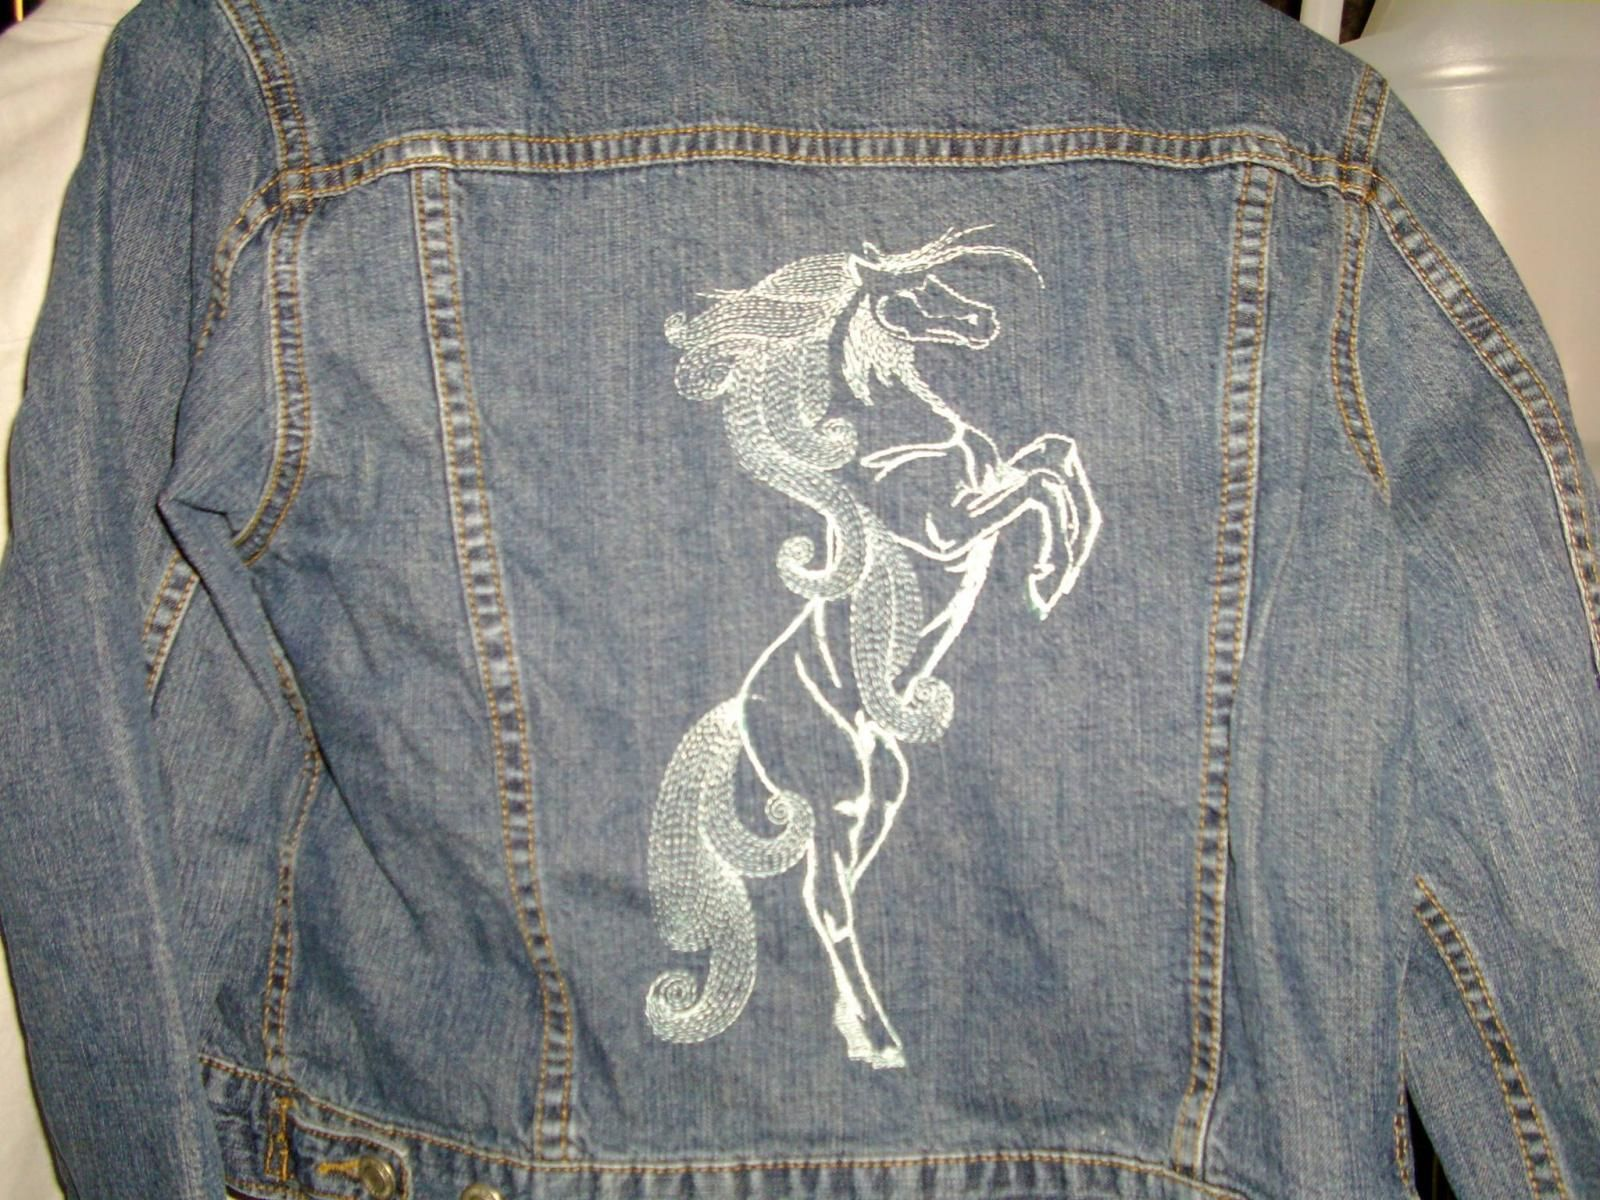 Jeans jacket with horse free embroidery design free machine jeans jacket with horse free embroidery design ccuart Gallery